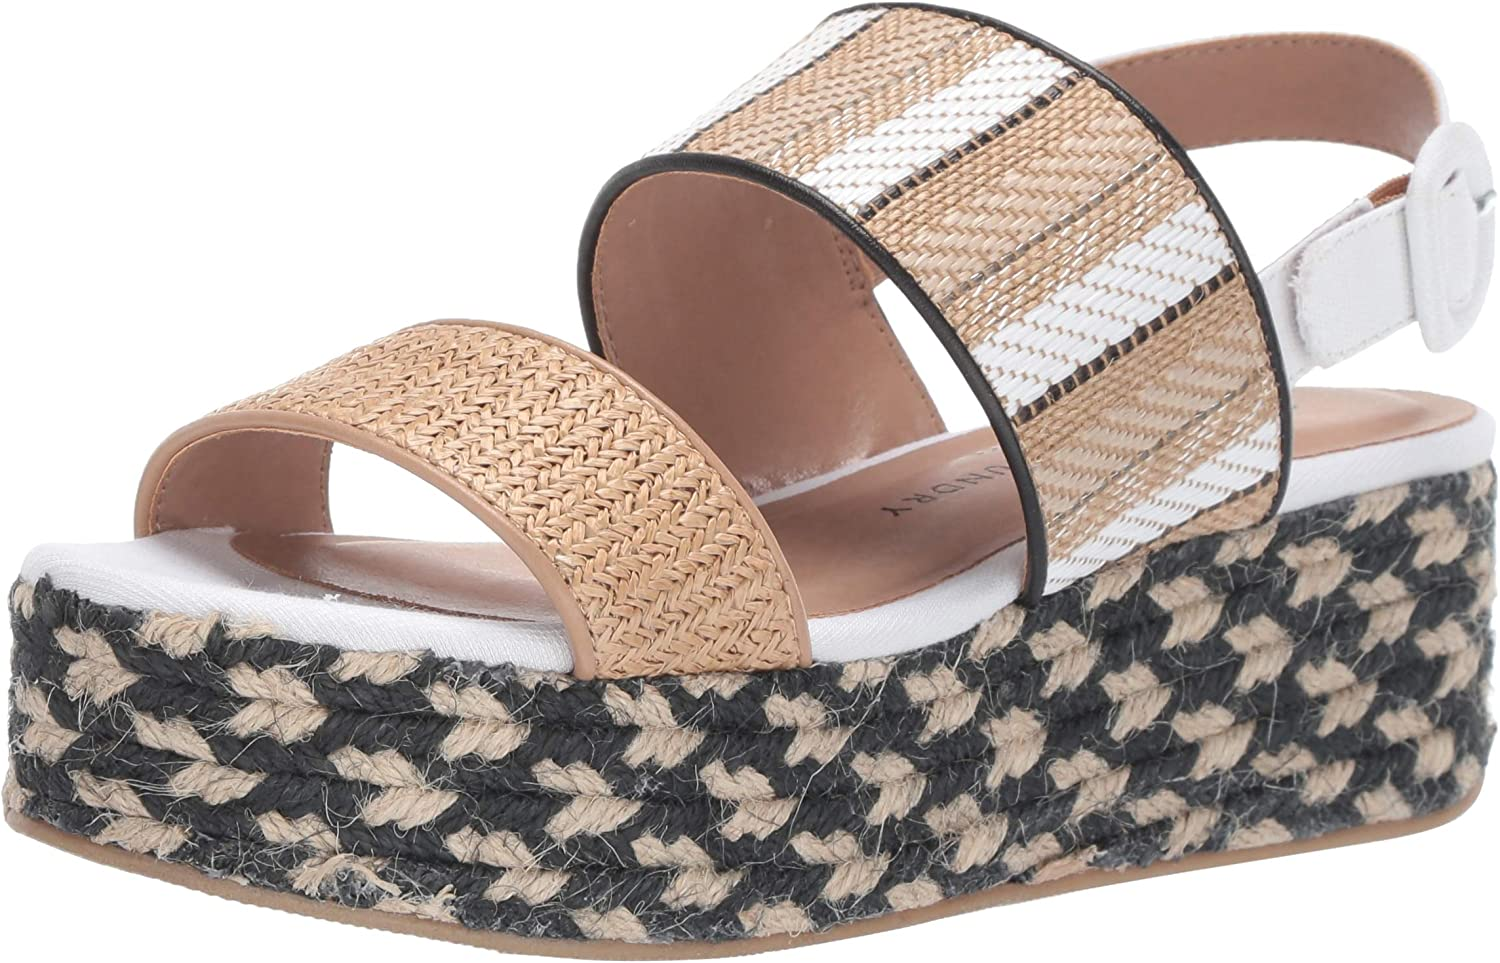 Chinese Laundry Women's Zuzu Espadrille Wedge Sandal